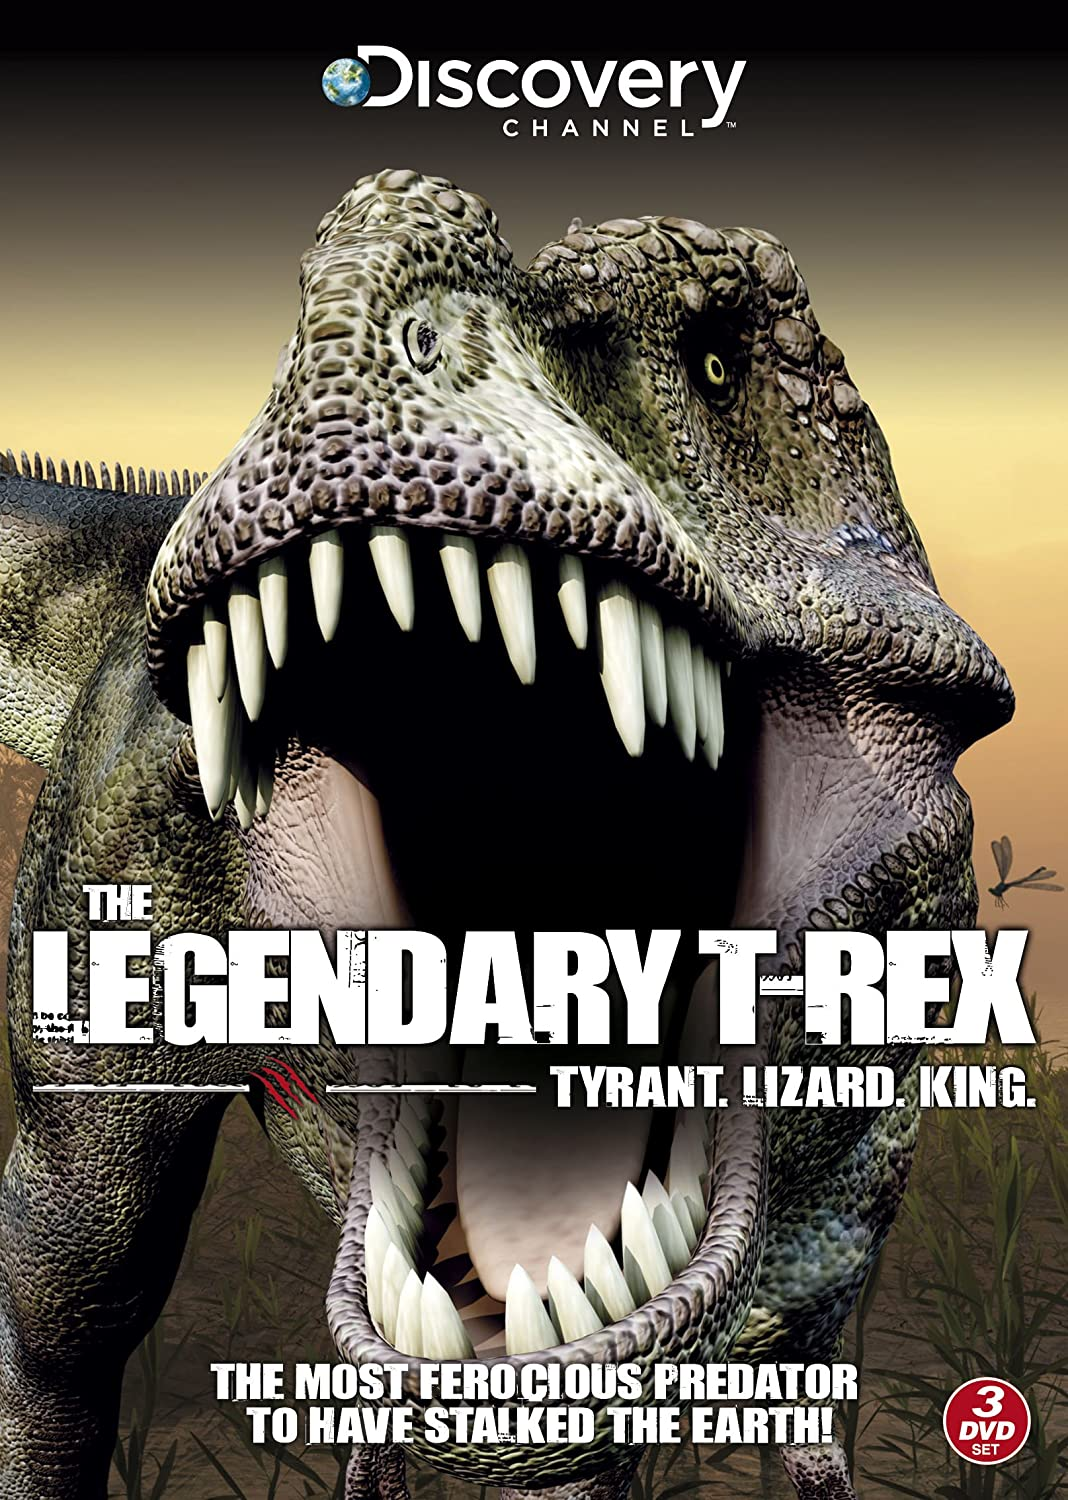 Discovery Channel - The Legendary T-REX: Tyrant, Lizard, King DVD: Amazon.co.uk: DVD & Blu-ray